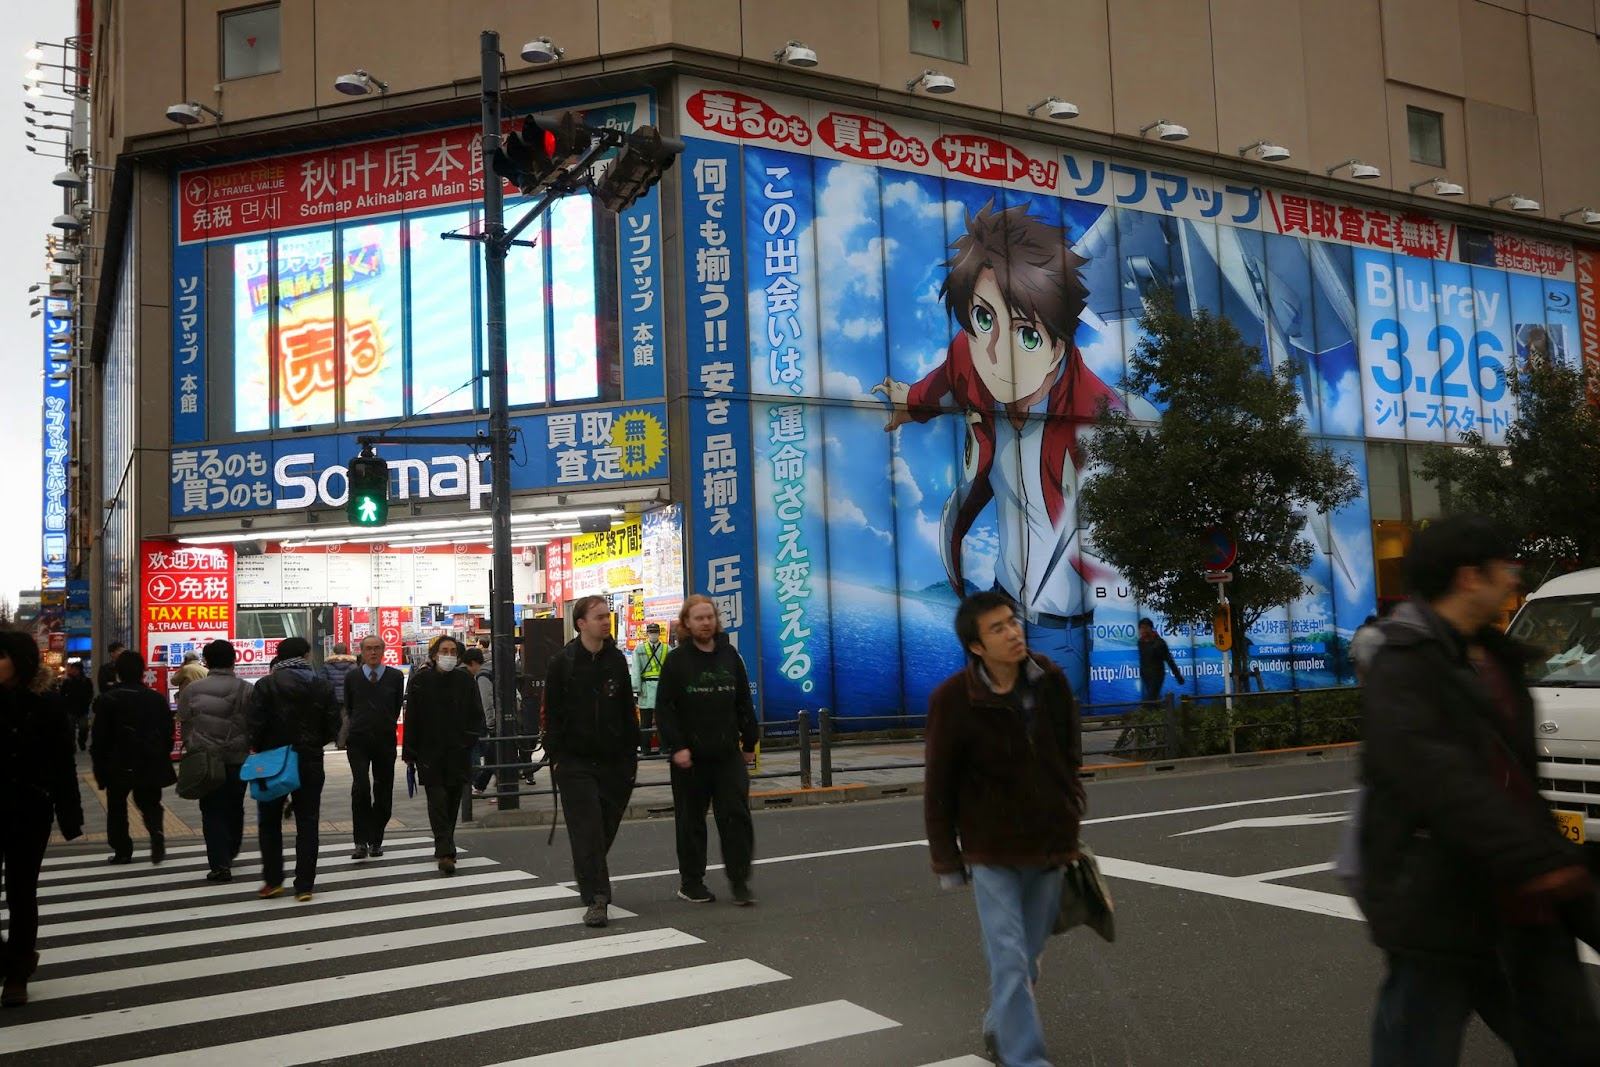 A popular Sofmap is selling all kinds of anime, manga and video games at Akihabara in Tokyo, Japan